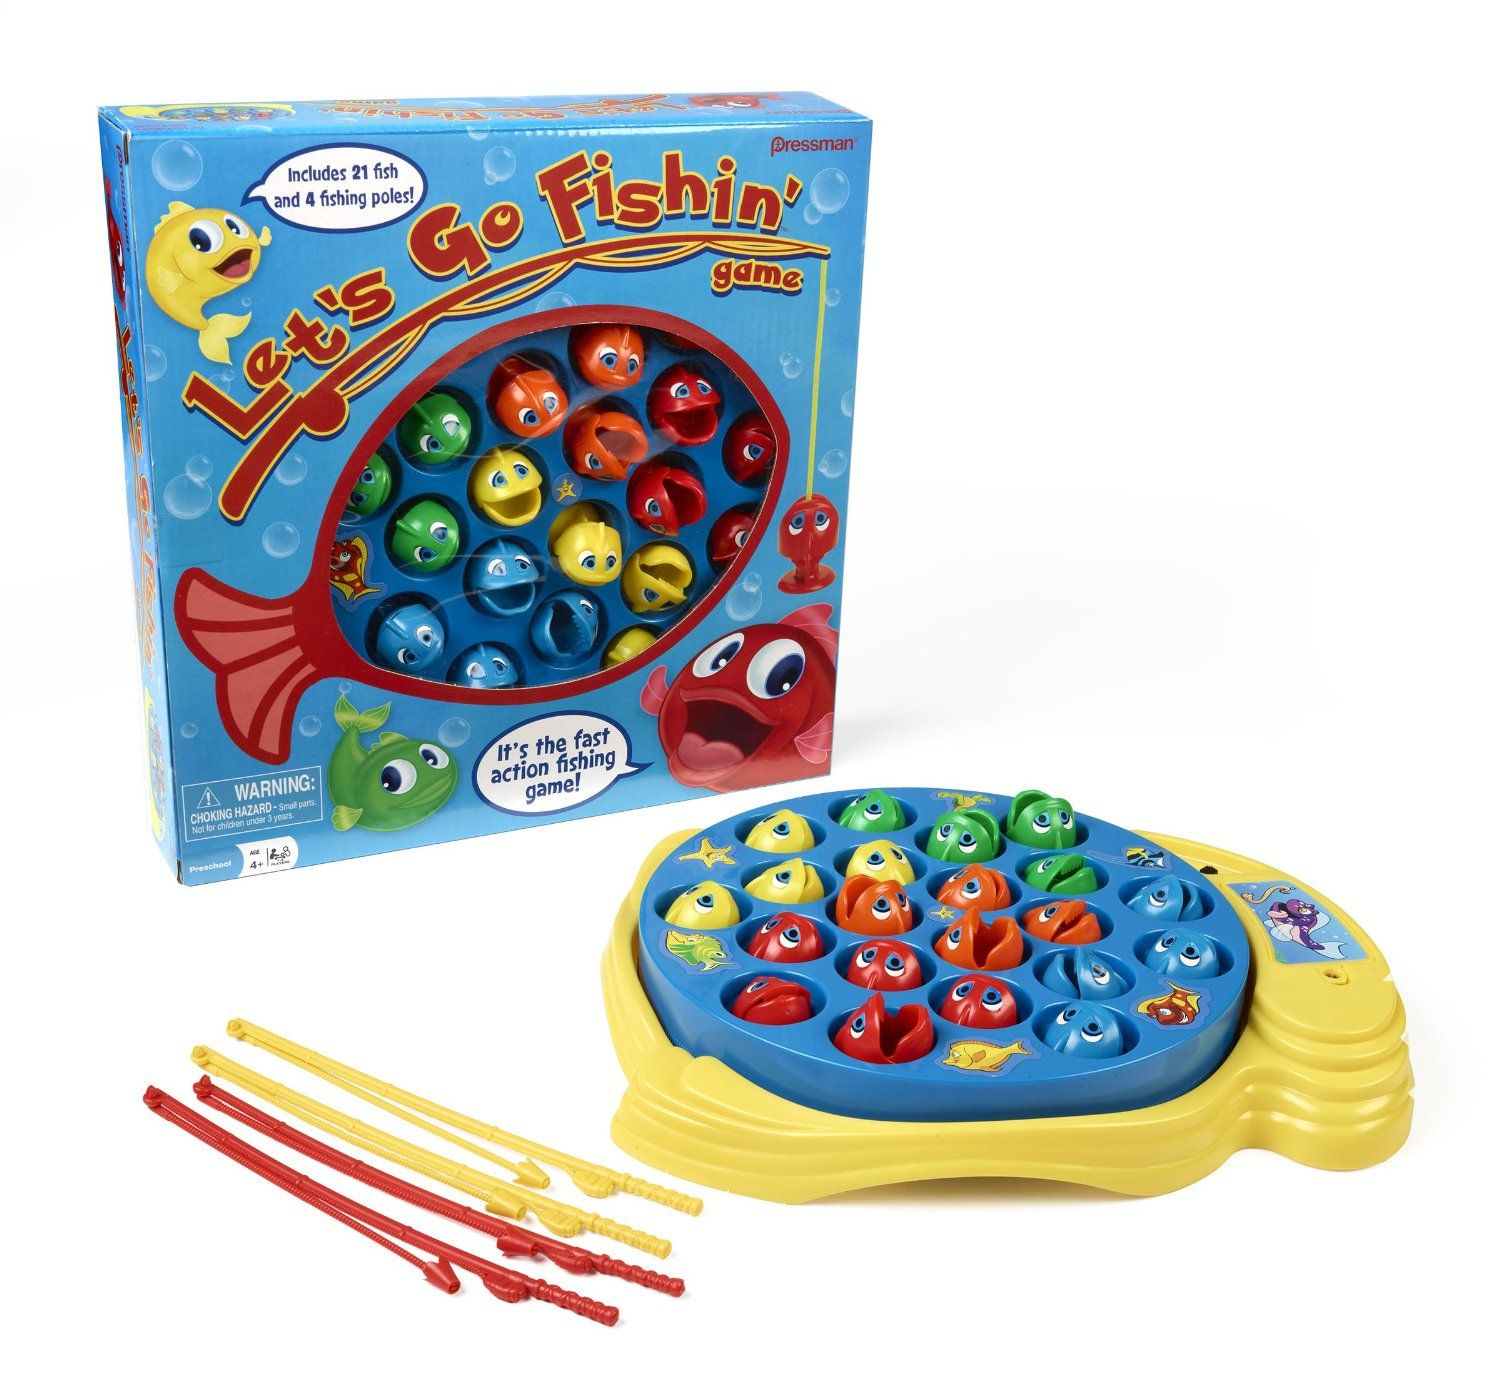 Lets Go Fishing Game Toy for Kids who love to Fish